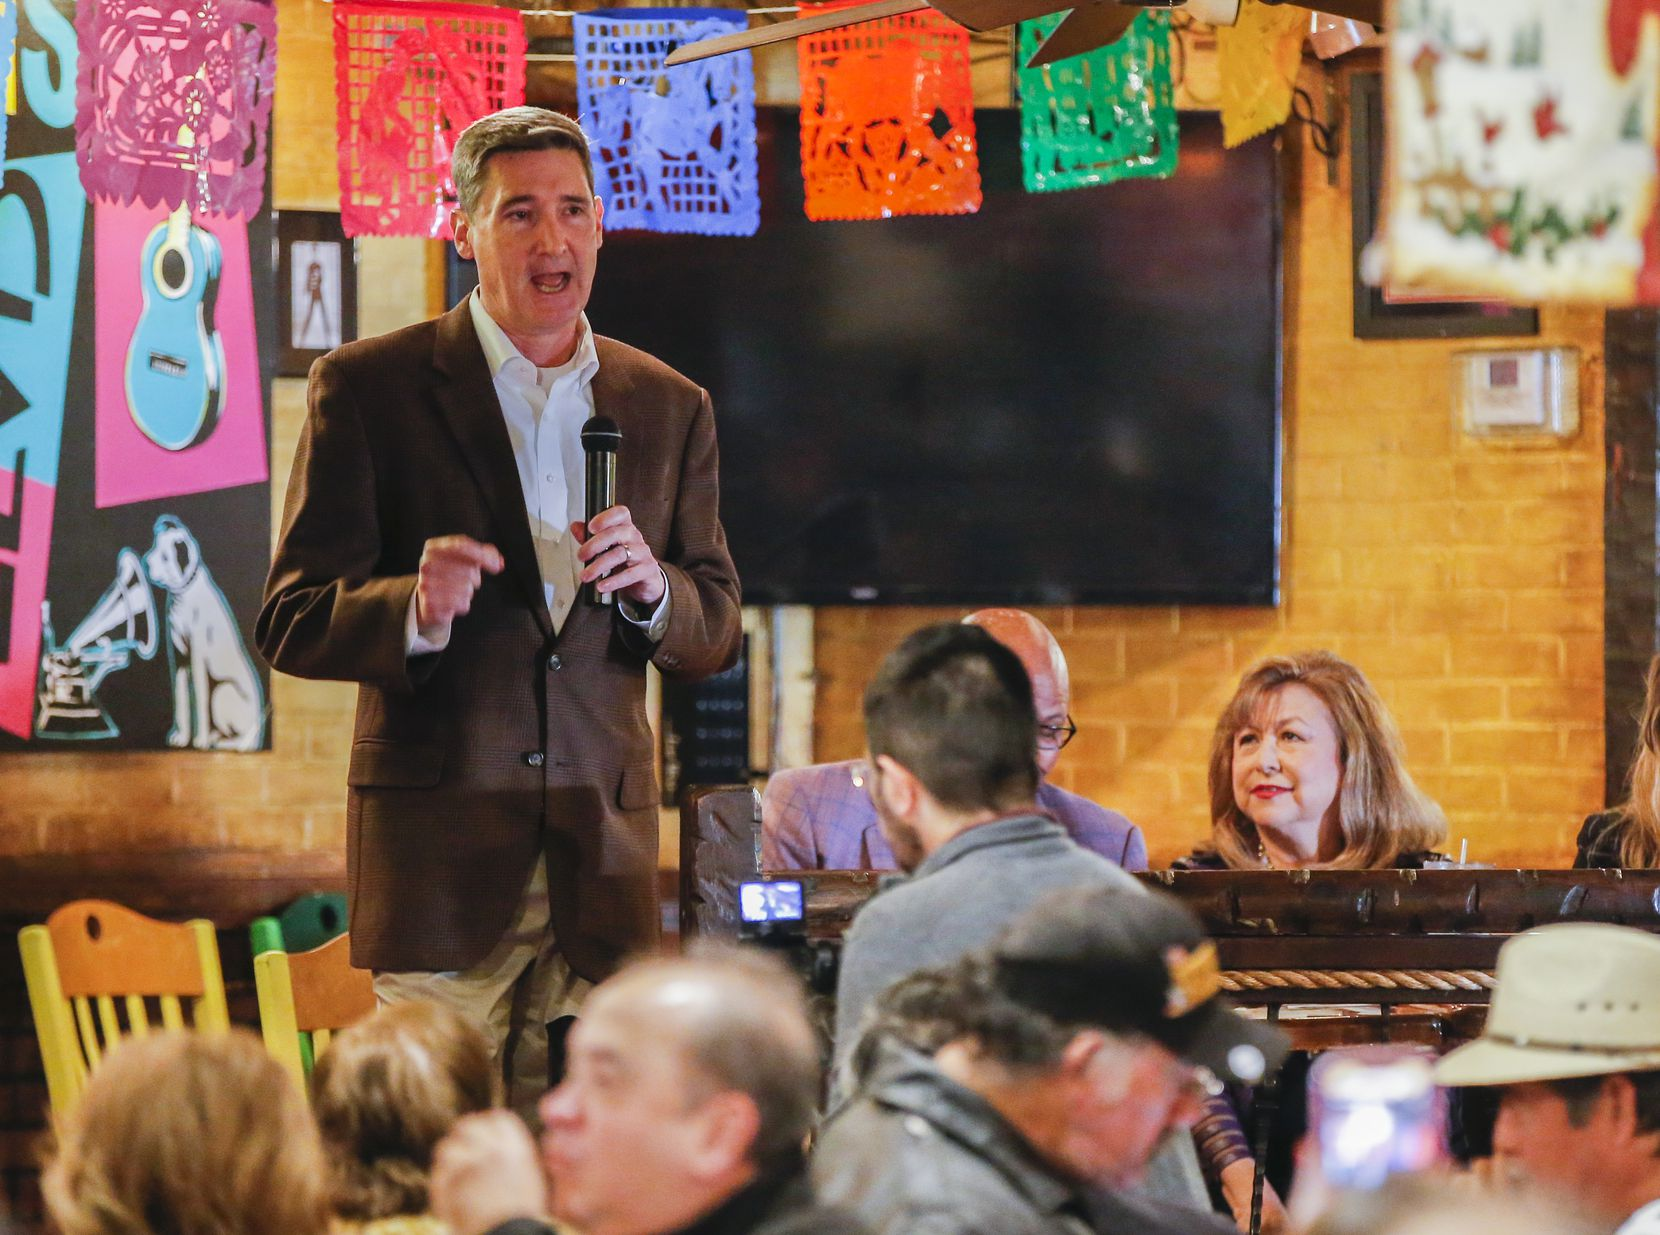 Dallas mayoral candidate Larry Casto speaks during a community breakfast at El Ranchito Restaurant hosted by the League of United Latin American Citizens, Saturday, January 5, 2019.